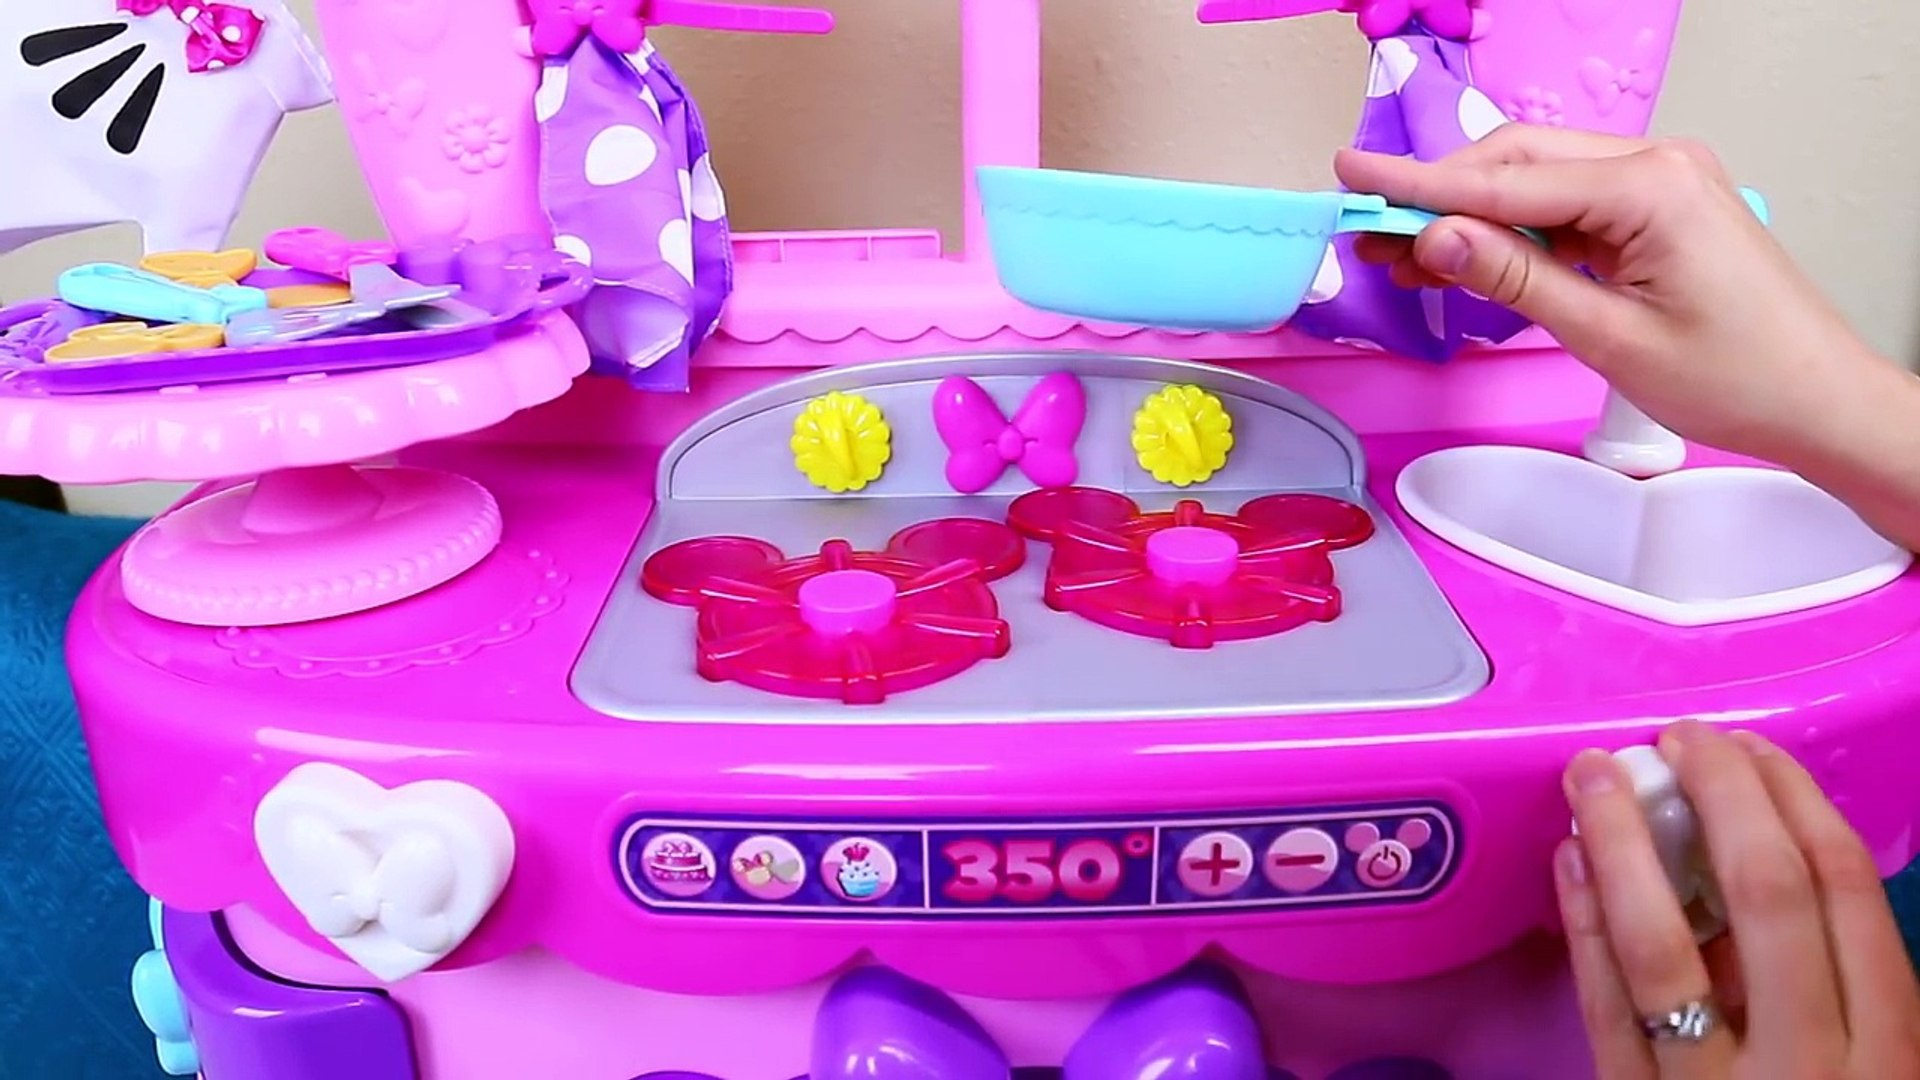 Minnie Mouse Sweet Surprises Play Kitchen Play Doh Food Cooking Flipping New Toddler Set Video Dailymotion